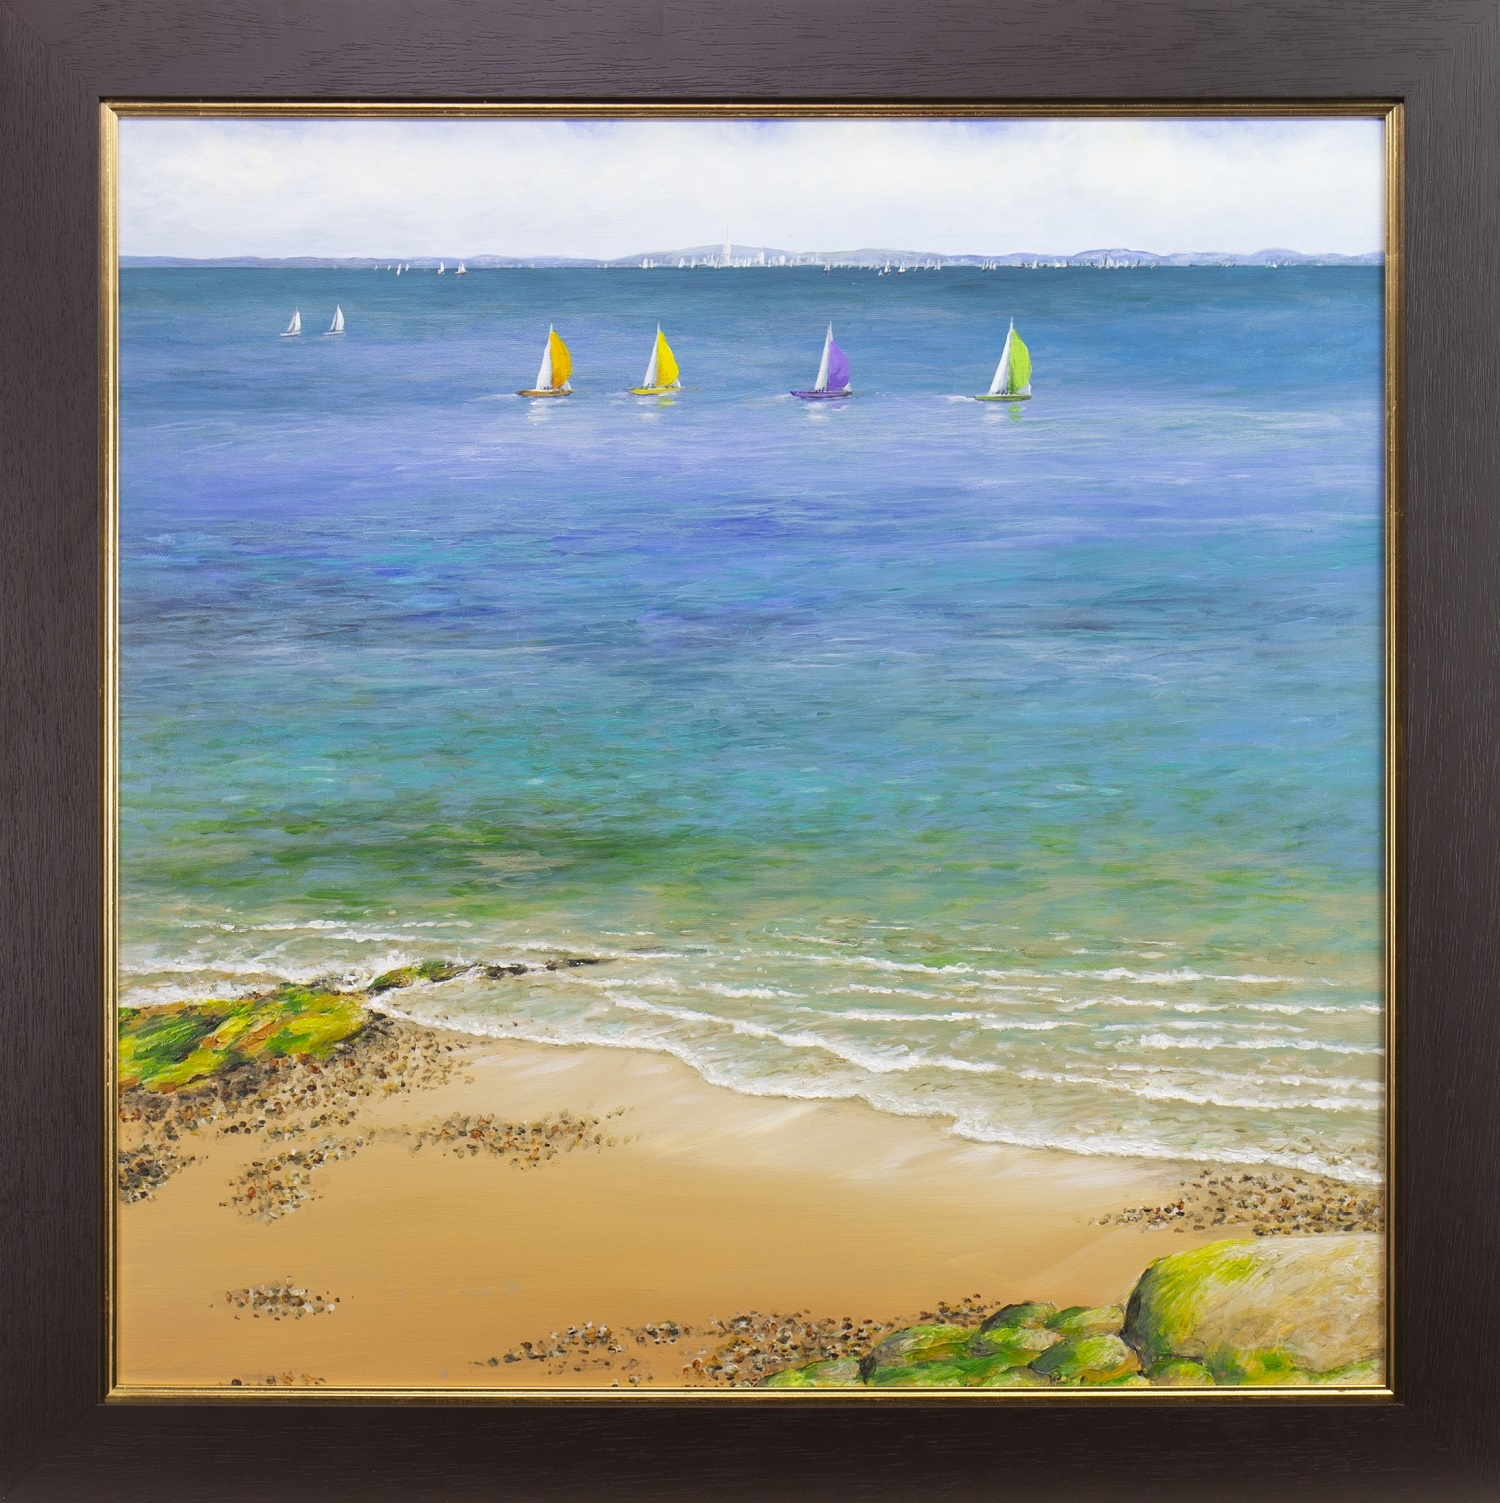 Lot 13 - SPINMAKERS UP ON A CALM DAY, AN OIL BY SANDRA FRANCIS